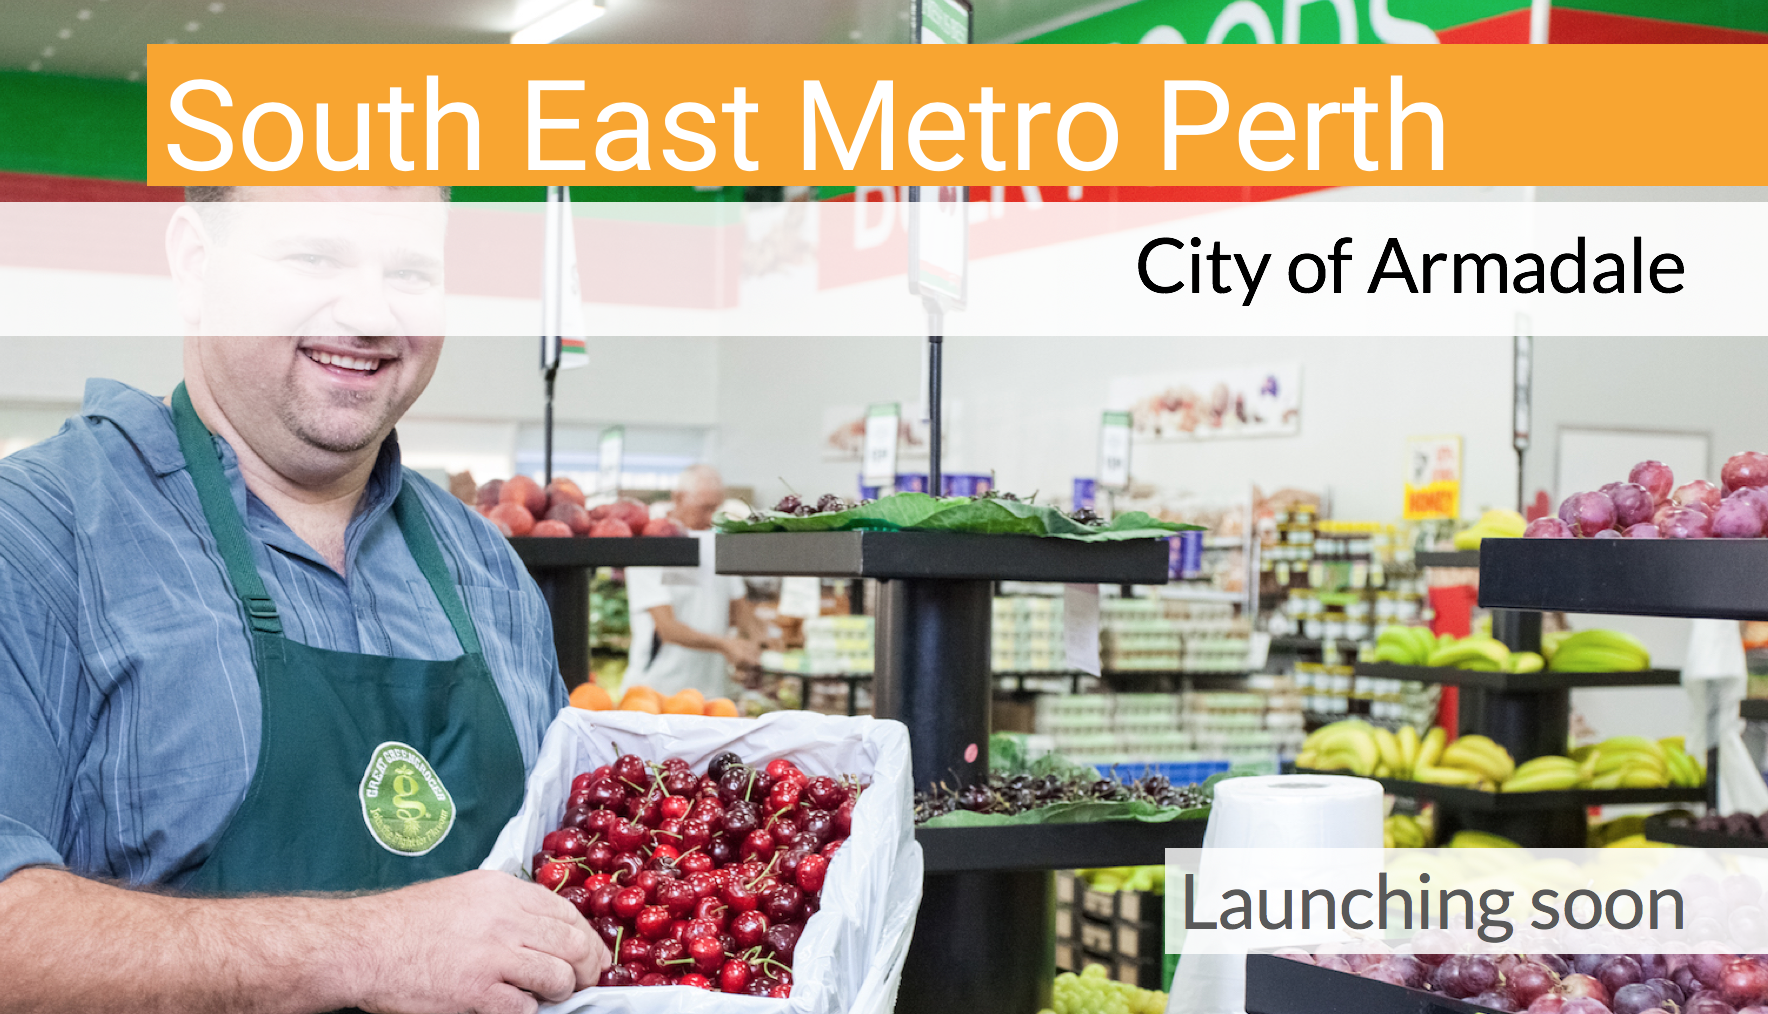 South East Metro Perth